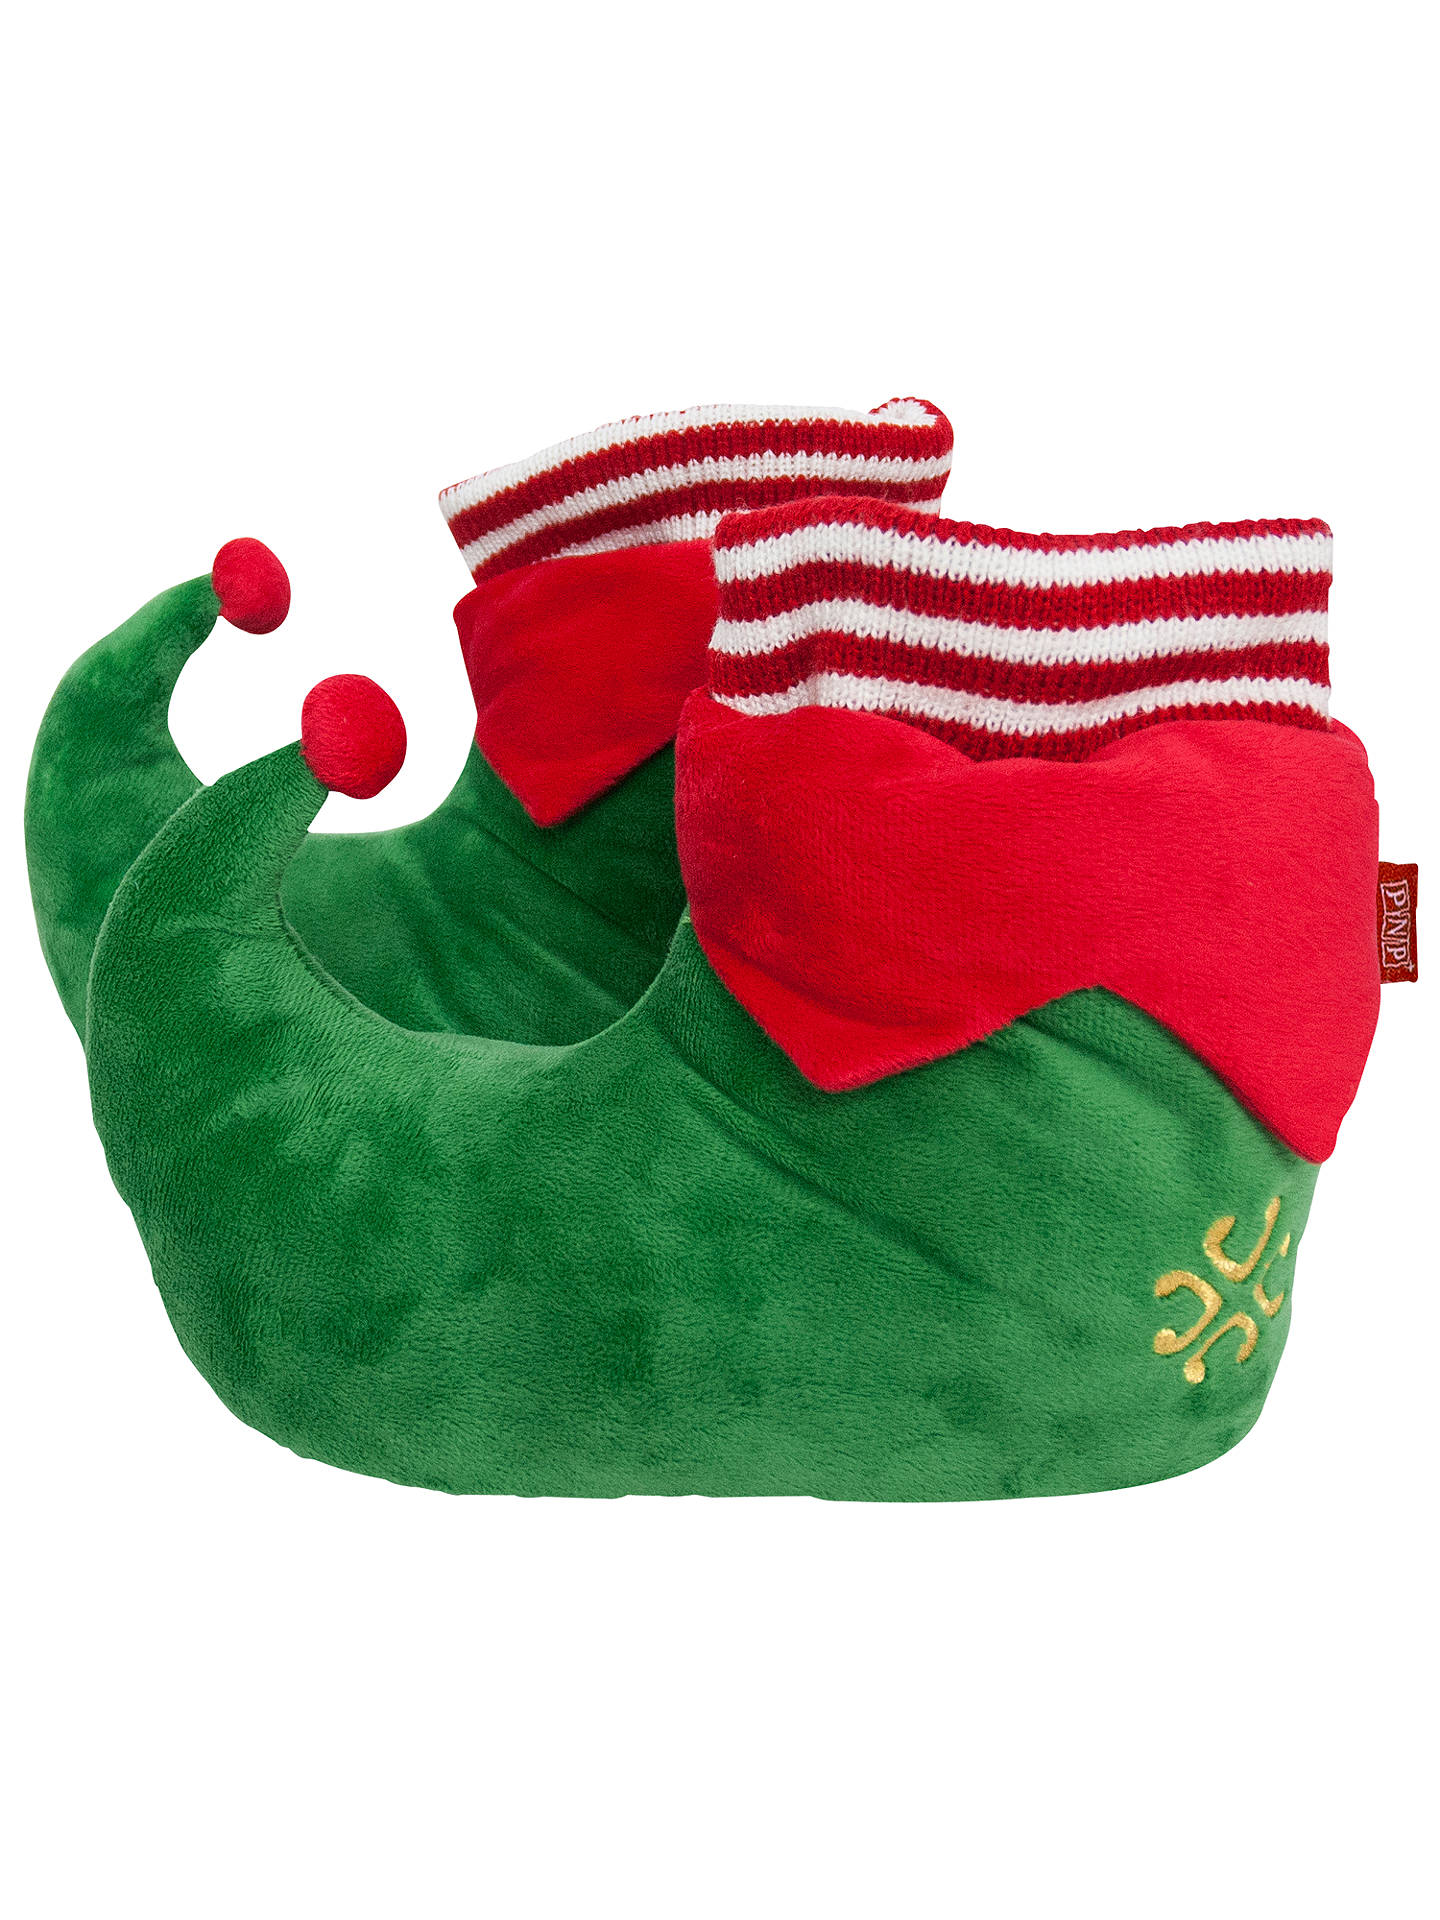 33eed30368b94 Portable North Pole Do-Good Elf Slippers at John Lewis   Partners